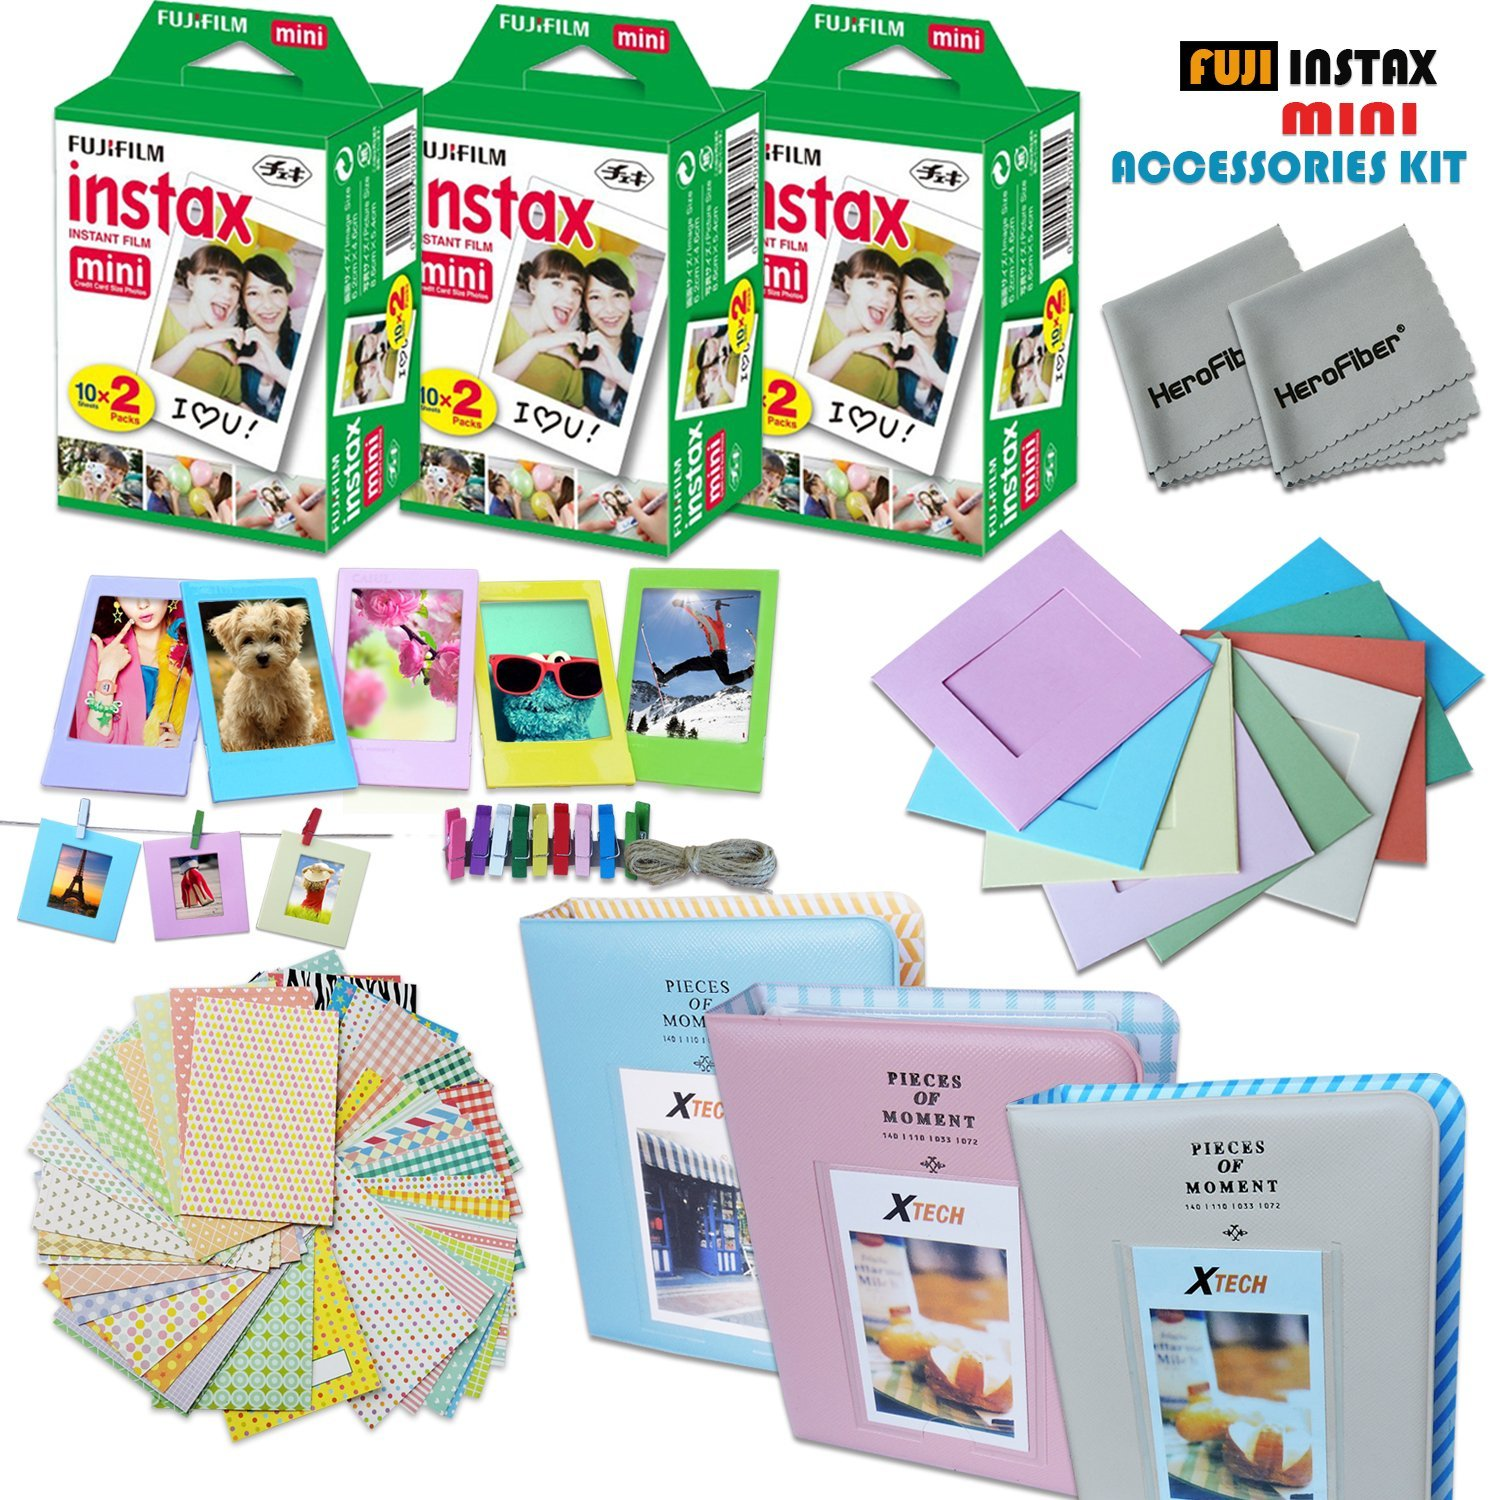 Xtech FujiFilm Instax Mini FILM Accessories Kit f/Fujifilm Instax Mini 70 Mini 8 8+ 7s 90 25 Includes: 3 x Fujifilm Instax Mini Twin Pack (60 Instant Films) 3 Albums + Assorted Frames/Stickers